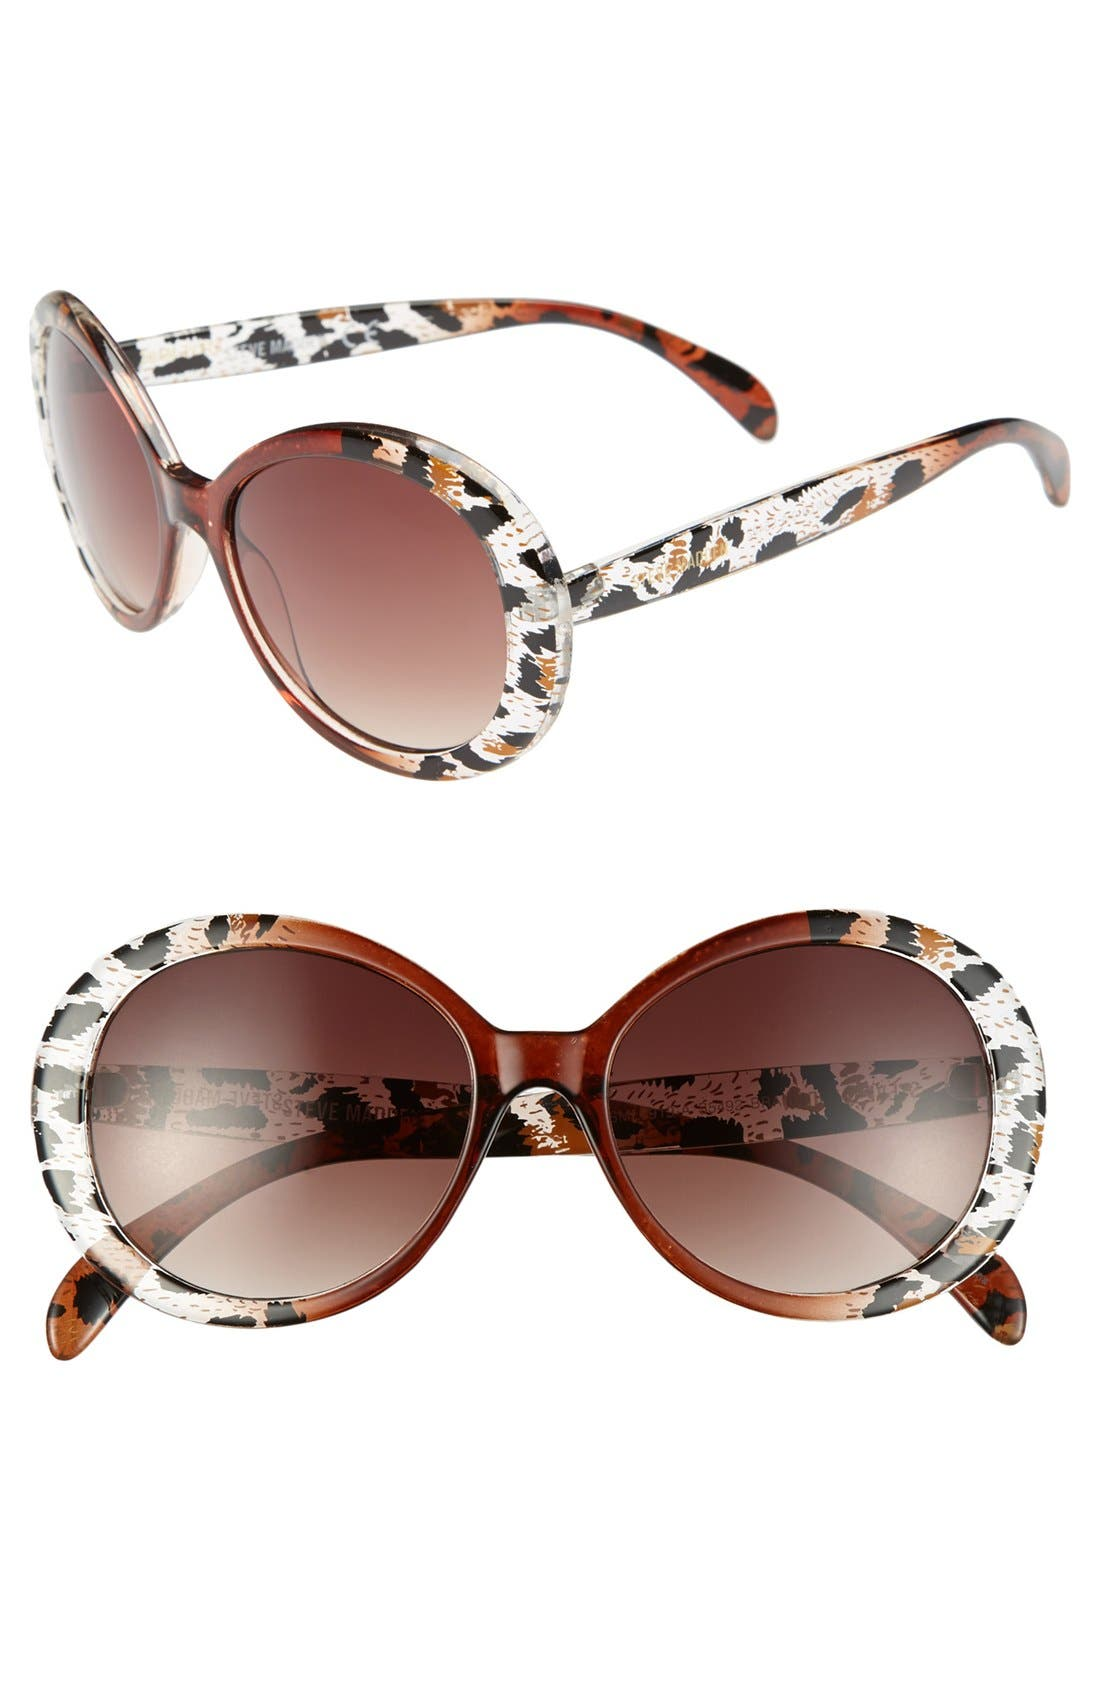 Main Image - Steve Madden 50mm Animal Print Oval Sunglasses